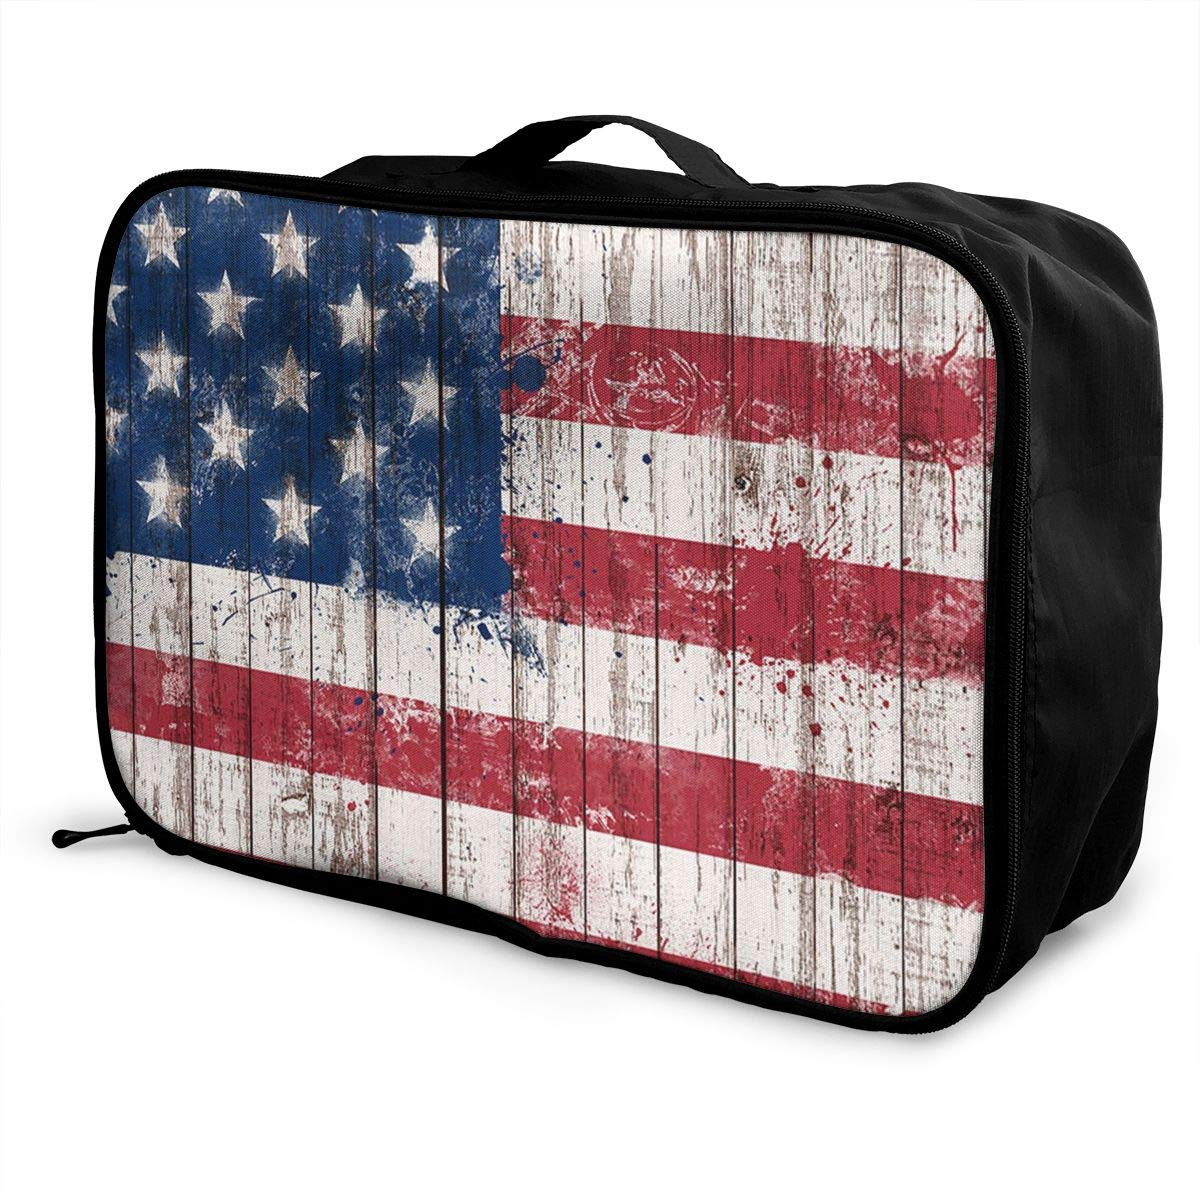 YueLJB Distressed American Flag Wood Lightweight Large Capacity Portable Luggage Bag Travel Duffel Bag Storage Carry Luggage Duffle Tote Bag